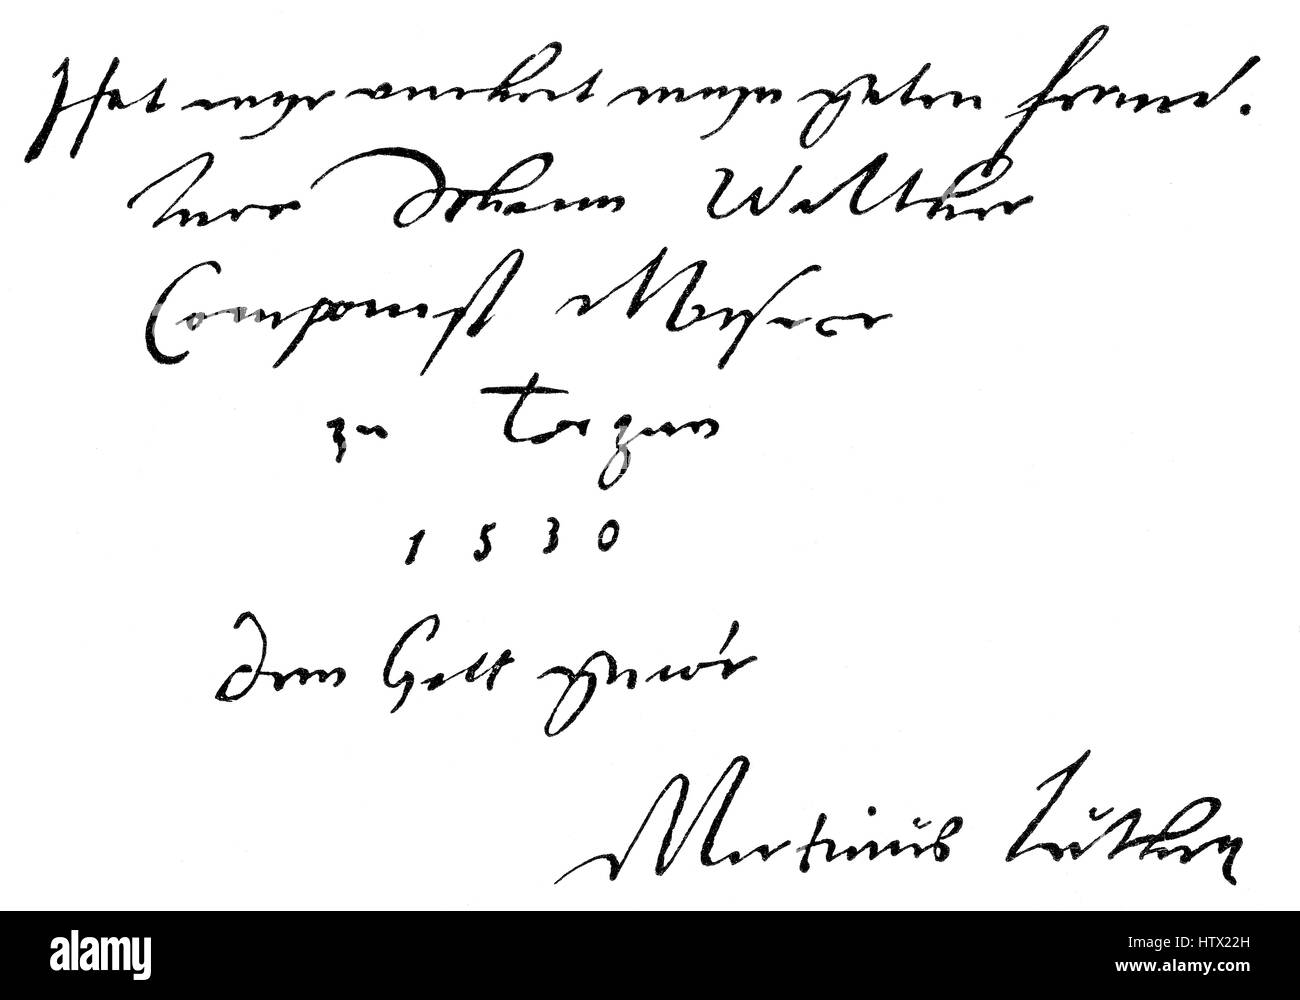 Document written by Martin Luther - Stock Image